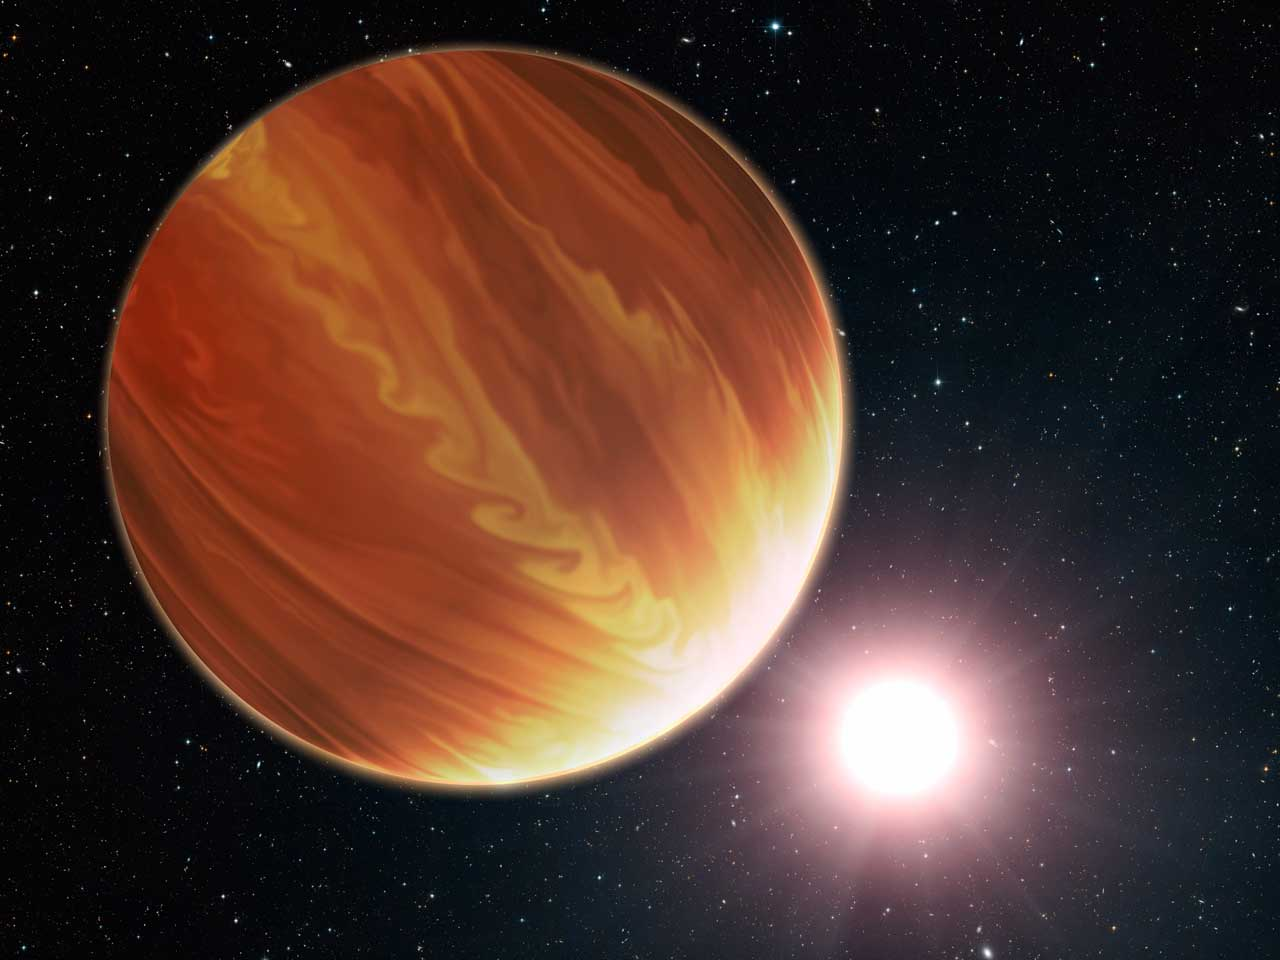 An exoplanet seen orbiting a star in an illustration